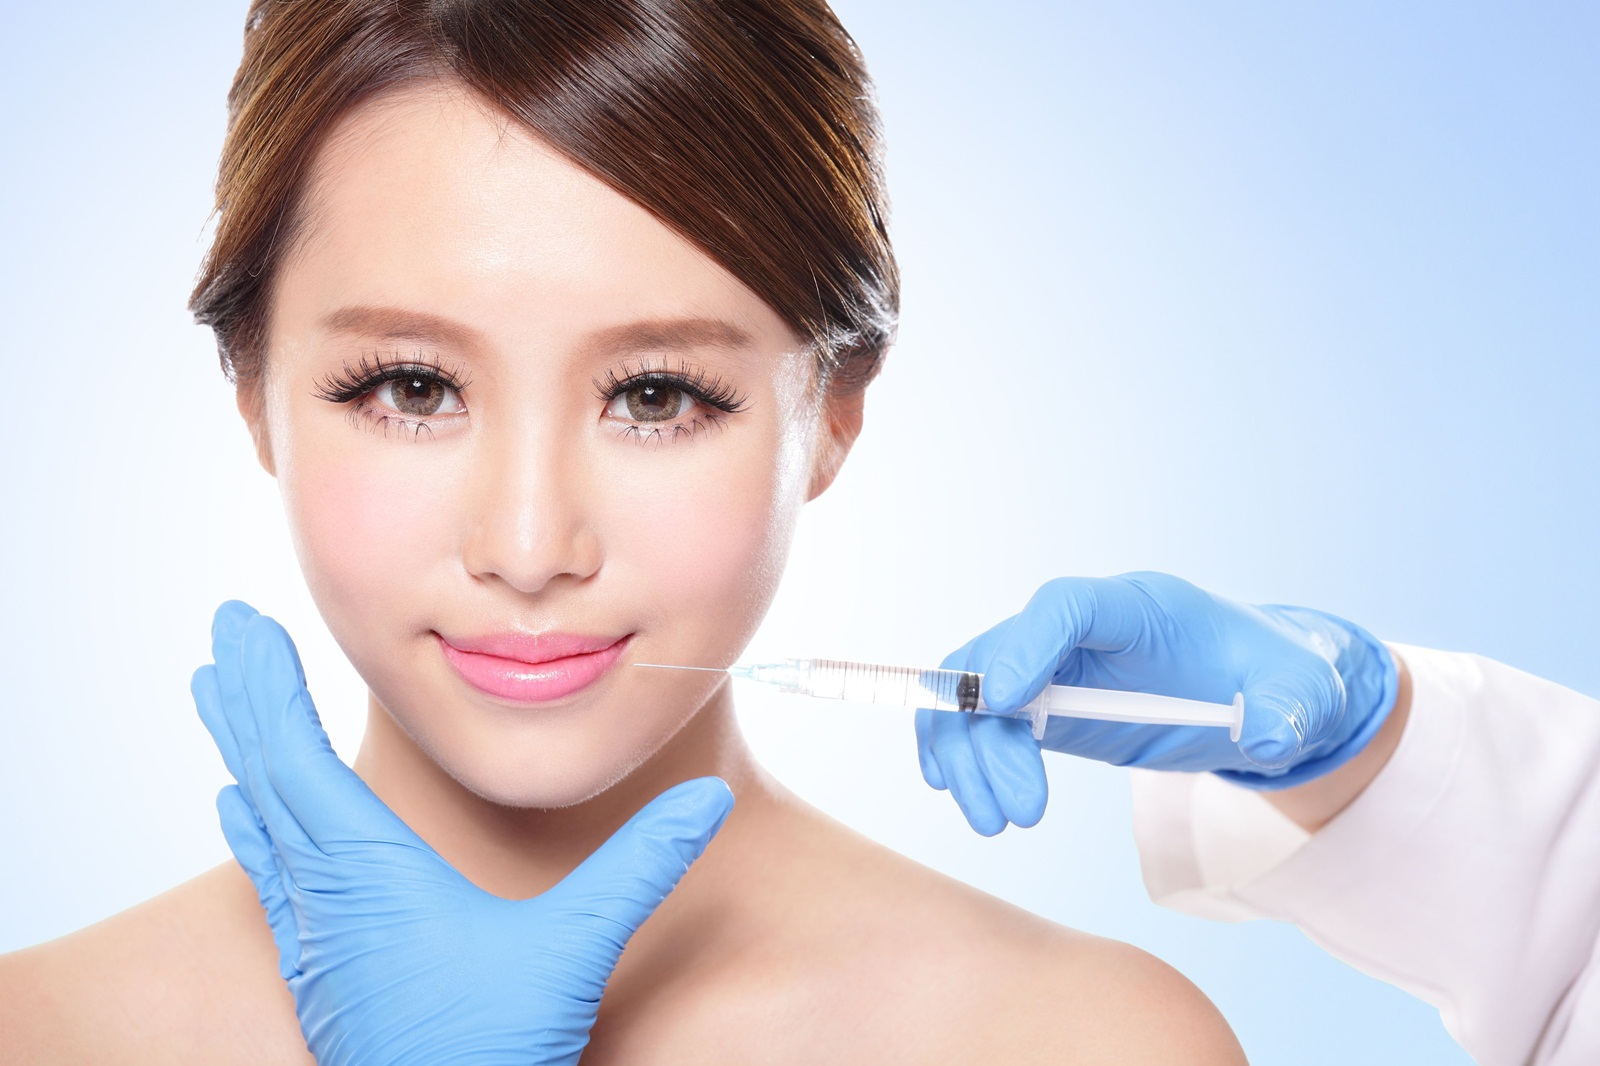 Average Cost Of Cosmetic Surgery | Cosmetic & Plastic Surgery Financing | Liposuction, Breast Implants, Lips | Denefits